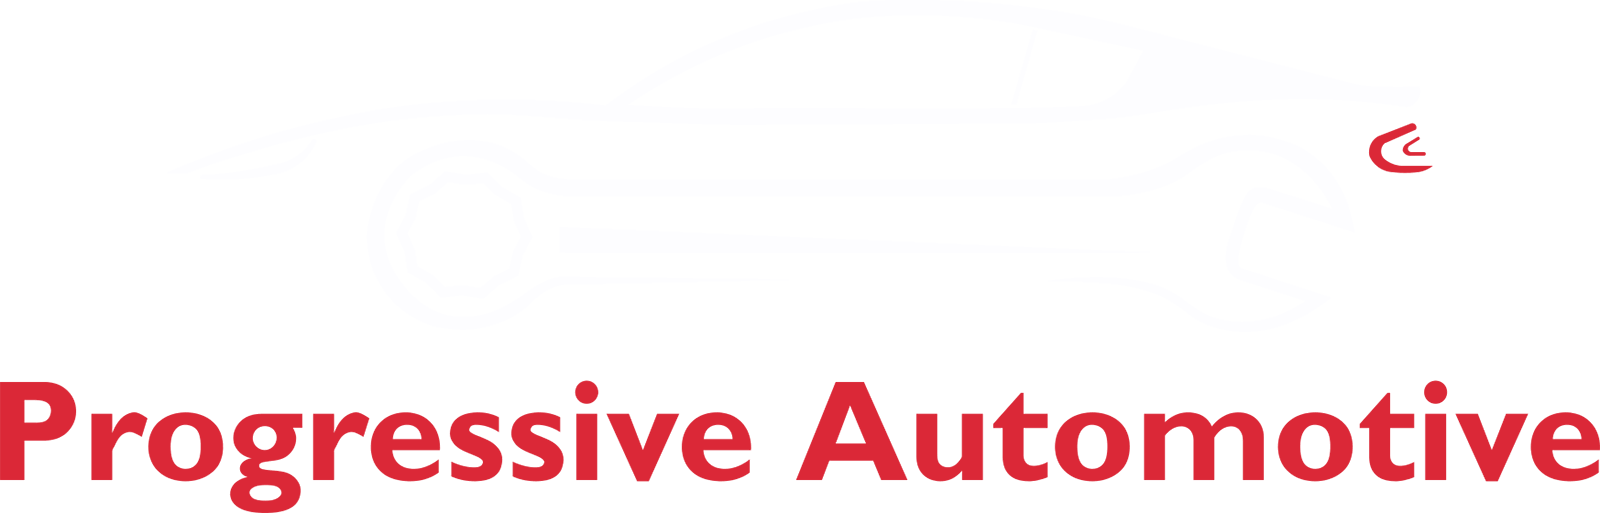 logo progressive automotive tauriko tauranga